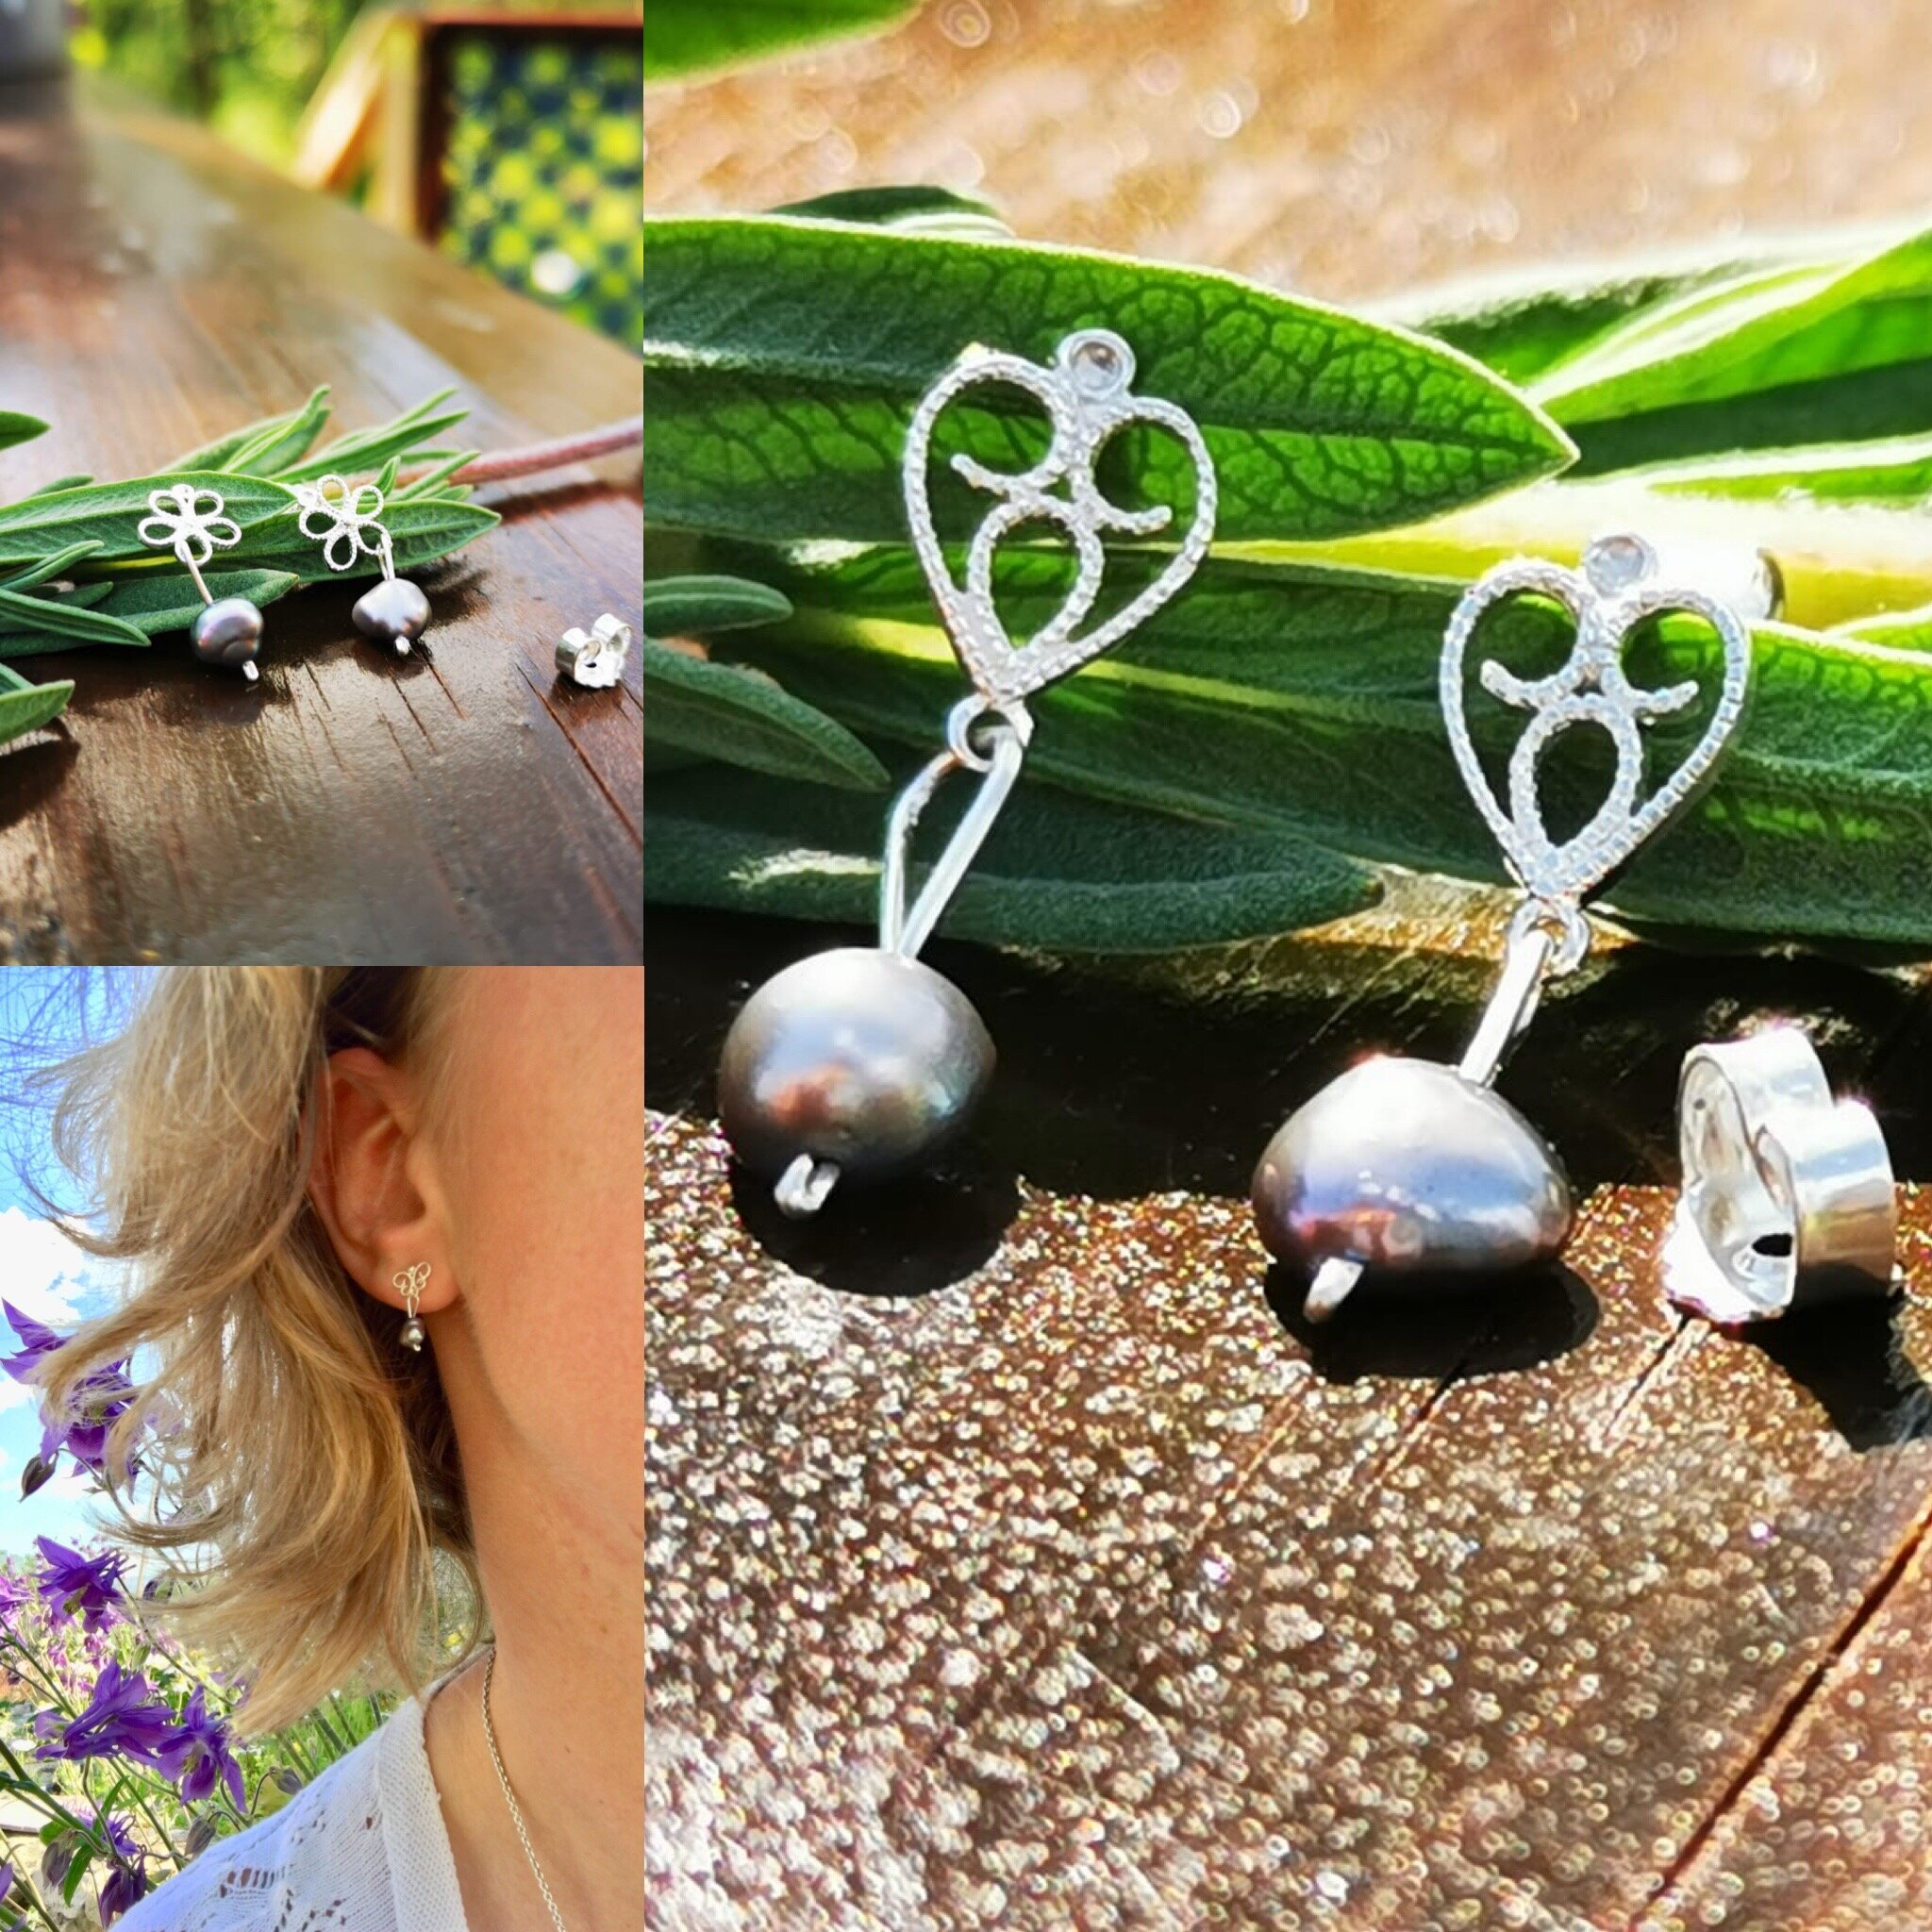 Handmade silver jewelry - Follow us to our etsy shop